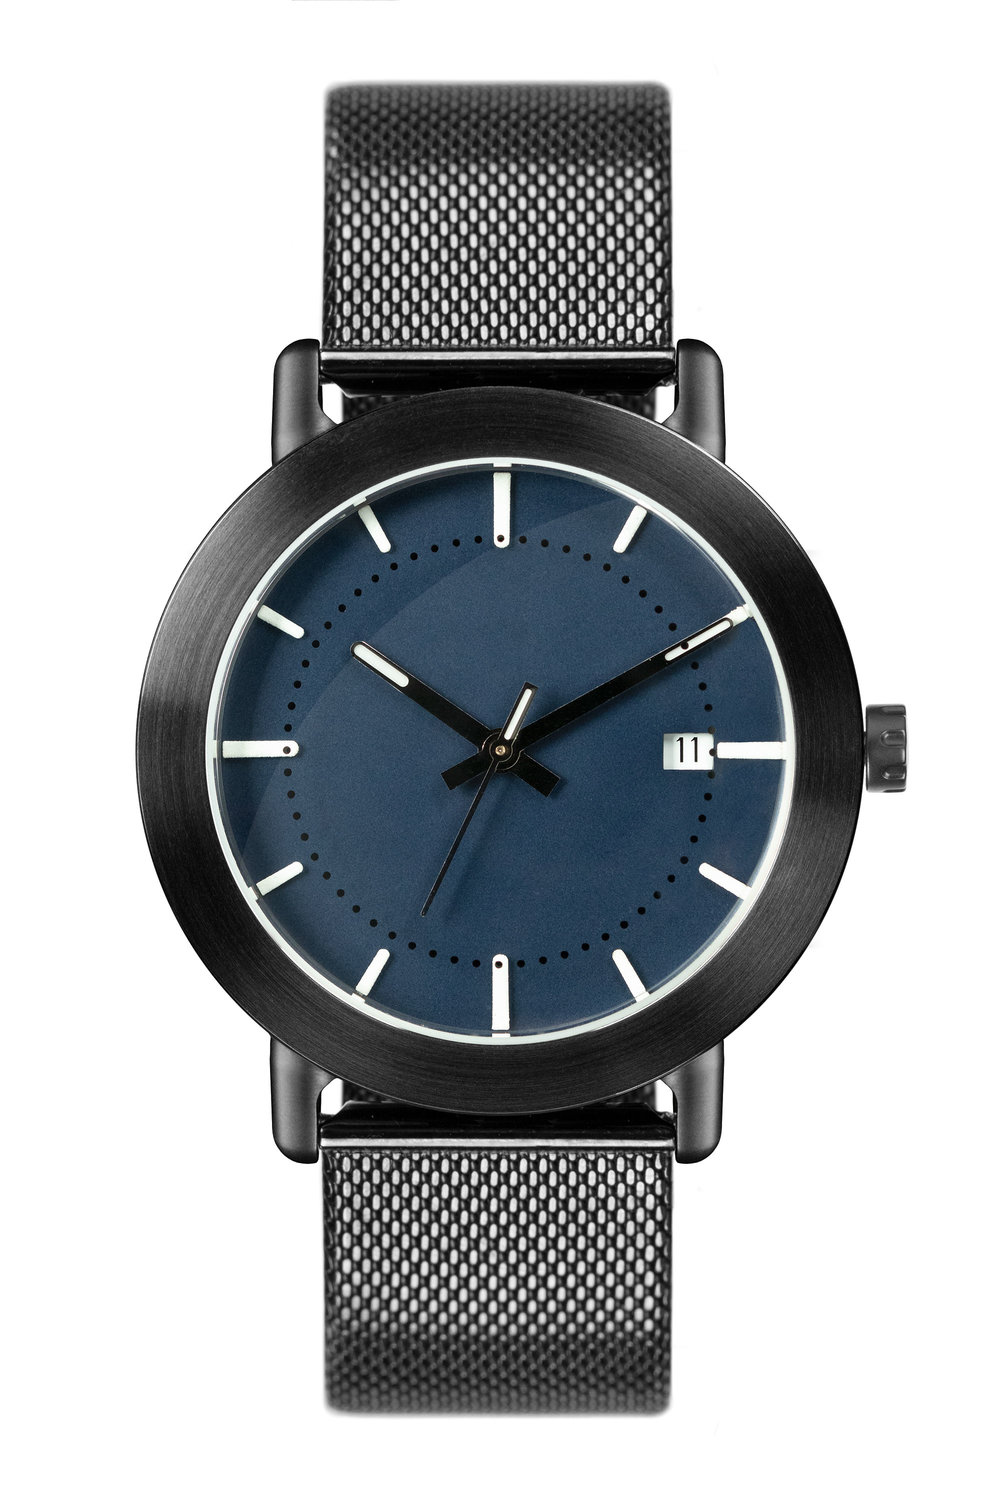 Eleven - The ELEVEN is the result of a challenge to create an elegant dress watch with an automatic movement.